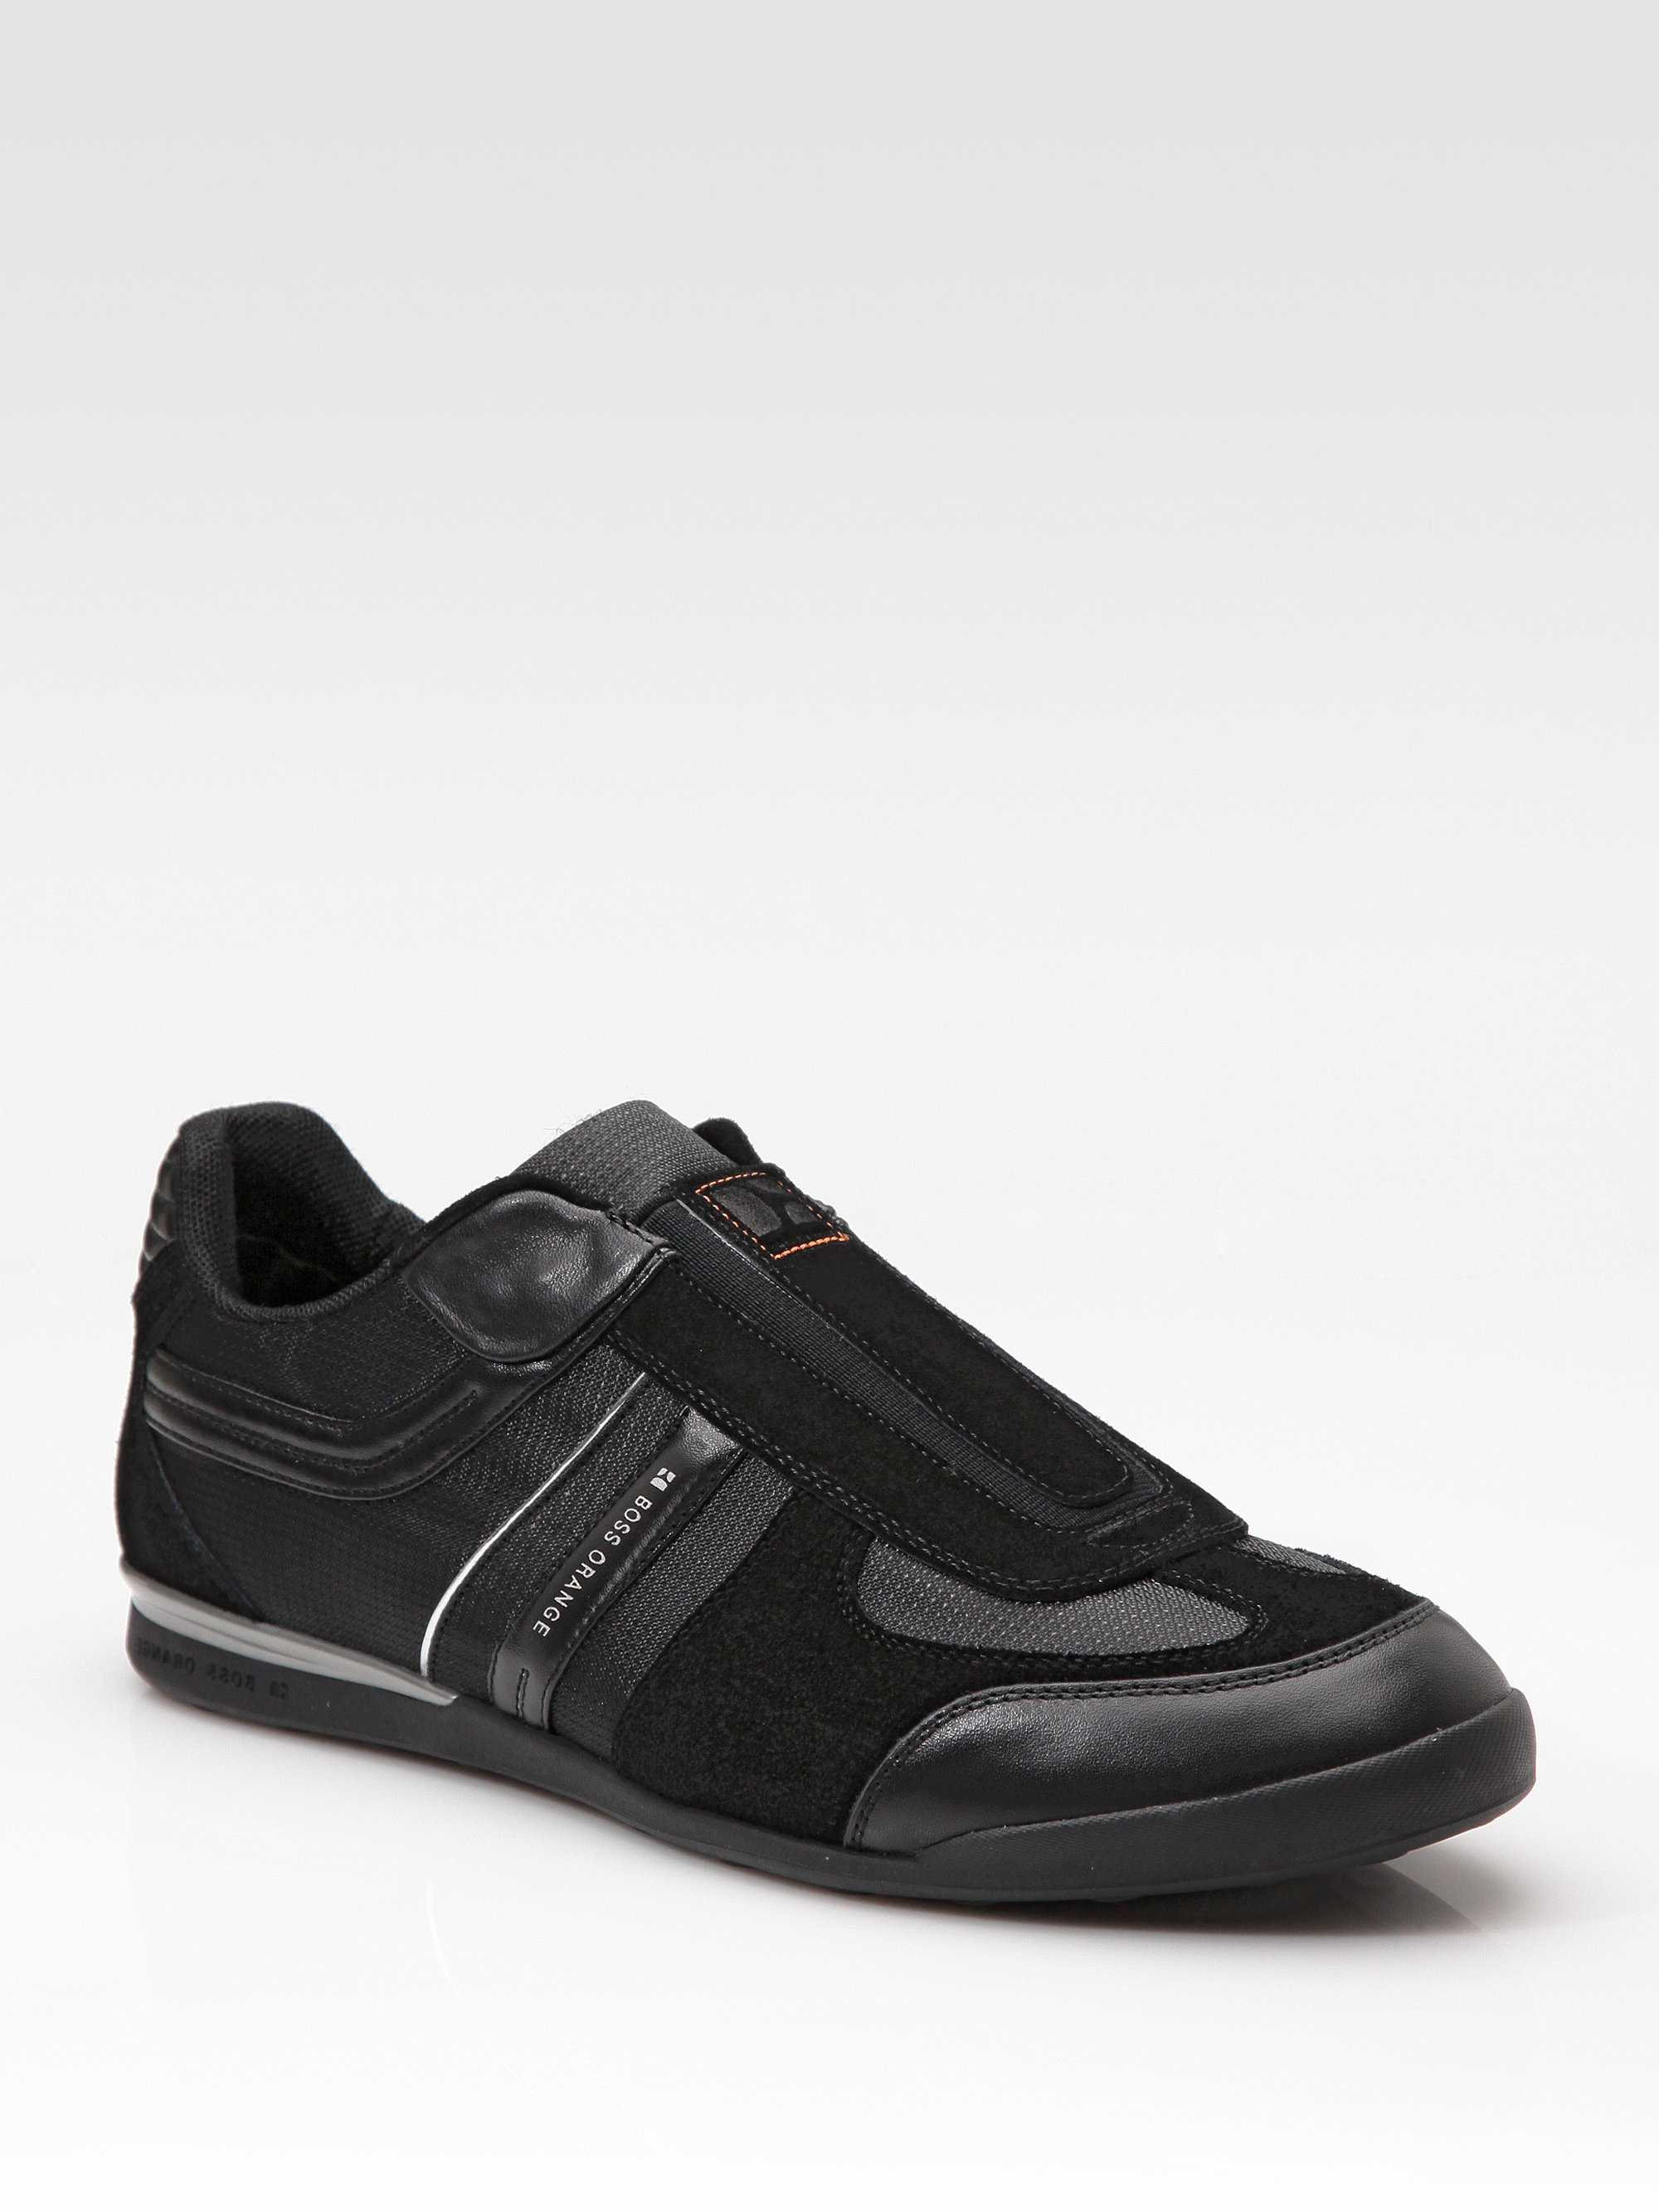 boss orange kempton slip on sneakers in black for men lyst. Black Bedroom Furniture Sets. Home Design Ideas